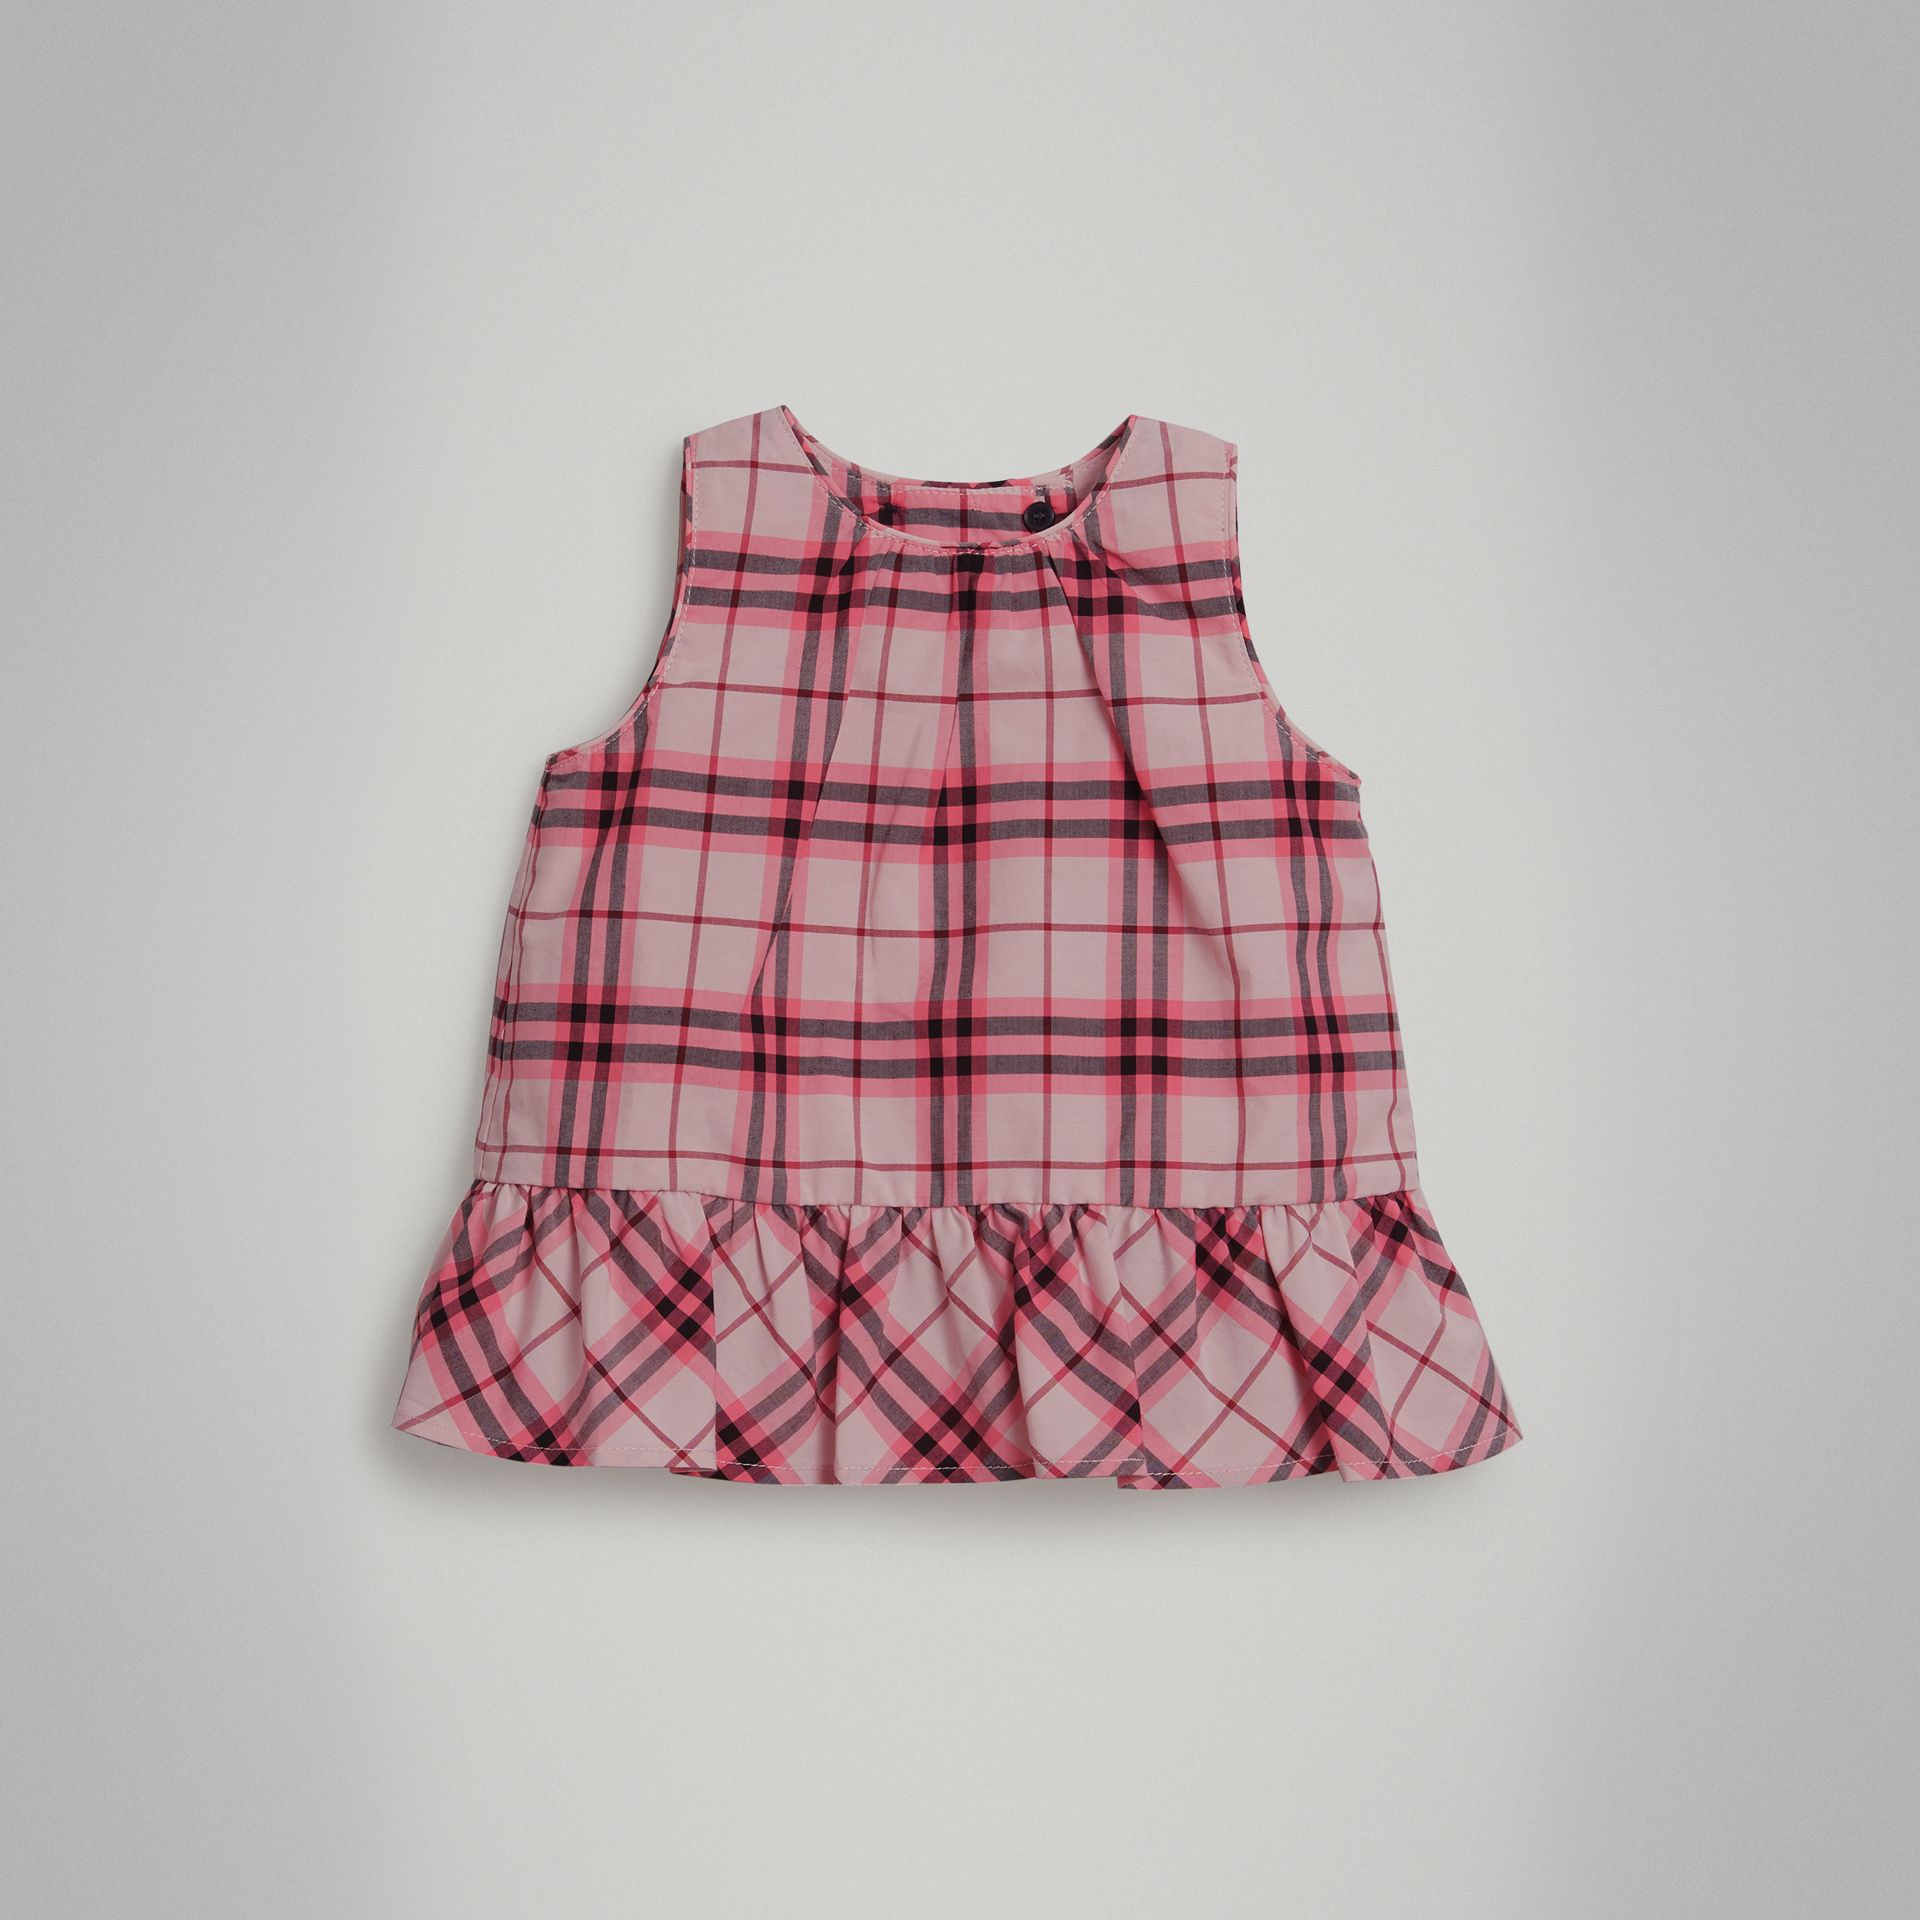 Ruffle Detail Check Cotton Top in Bright Rose - Children | Burberry United Kingdom - gallery image 0